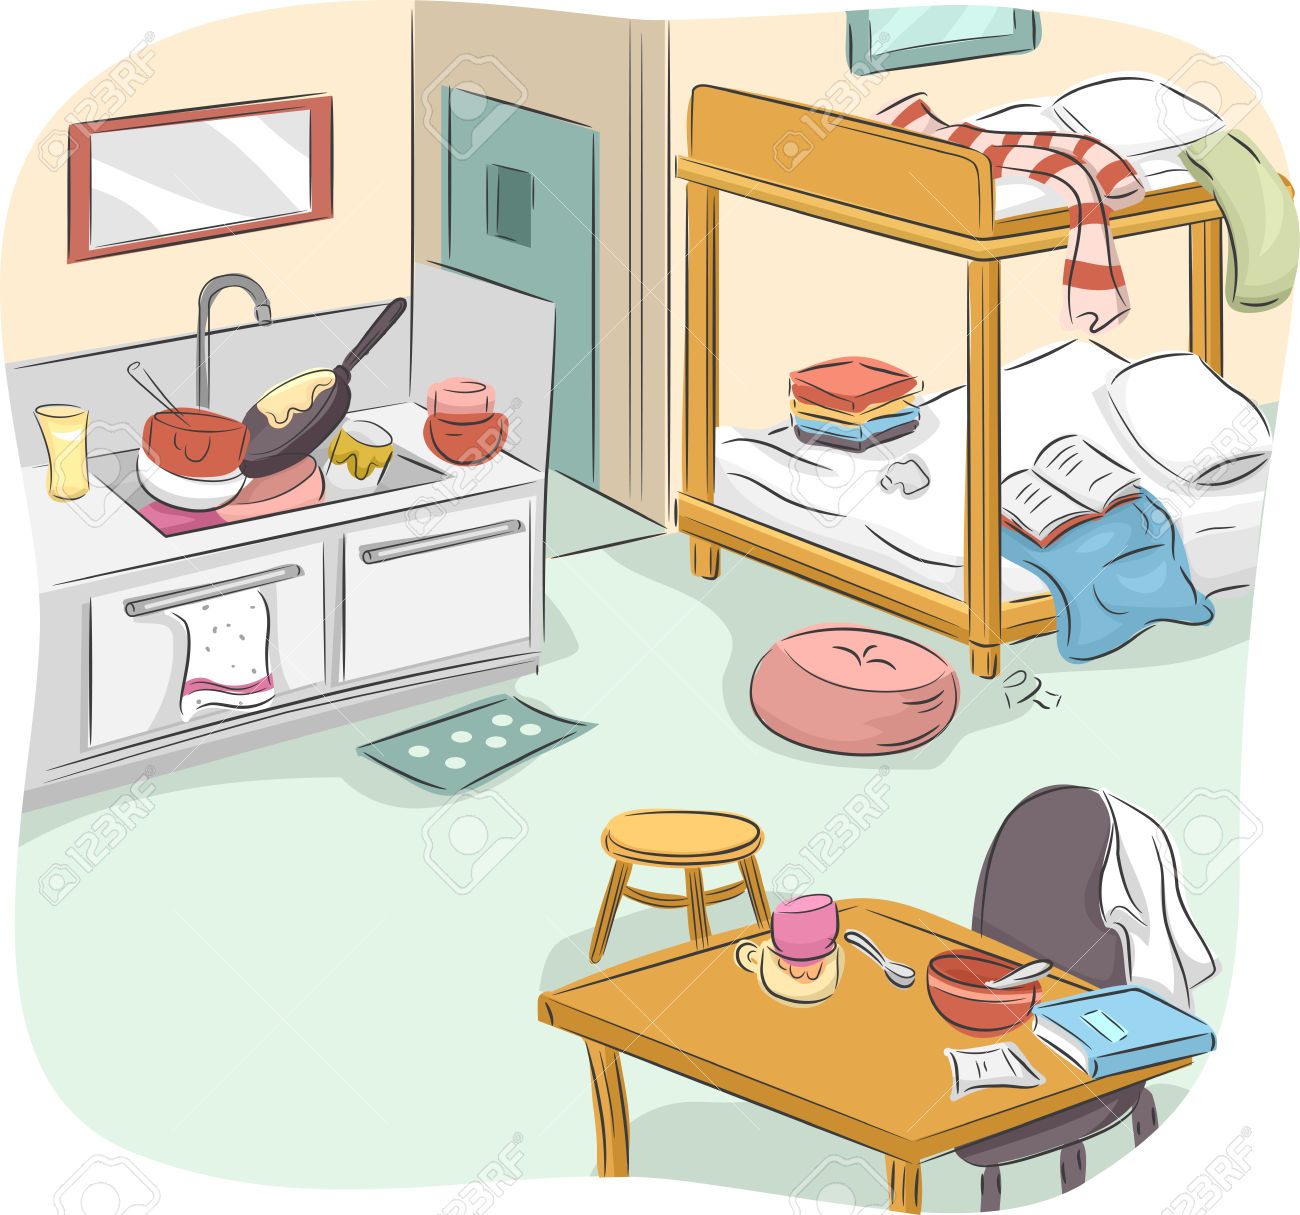 Bedroom clipart messy house Dirty Dirty  on clipart